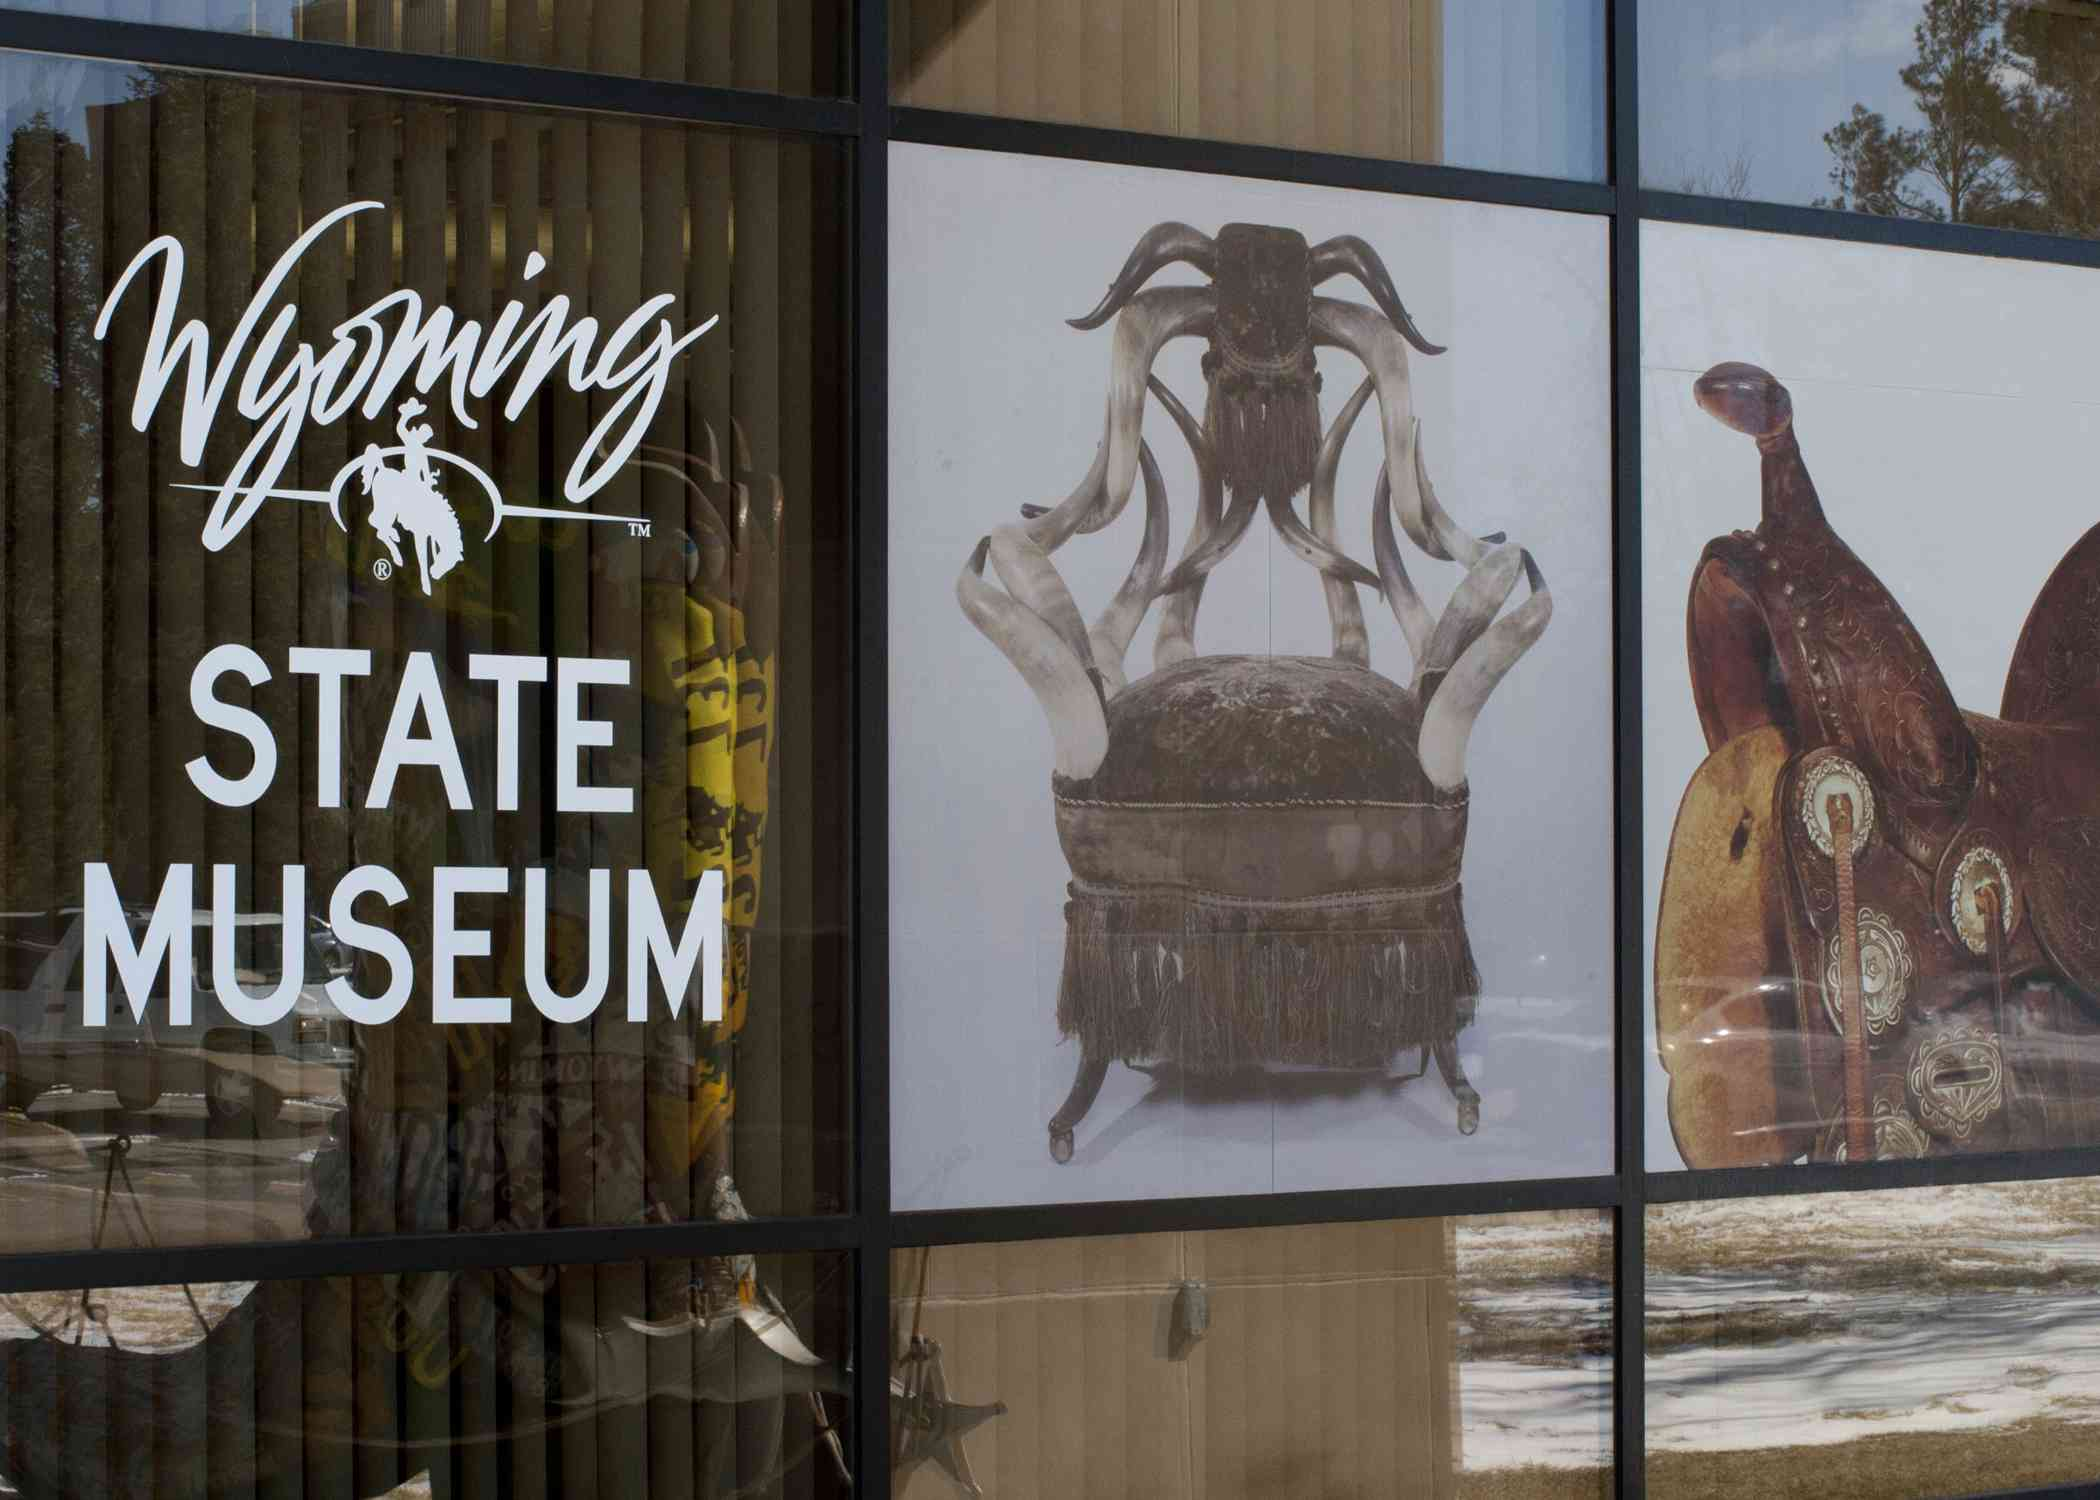 The front window of the Wyoming State Museum